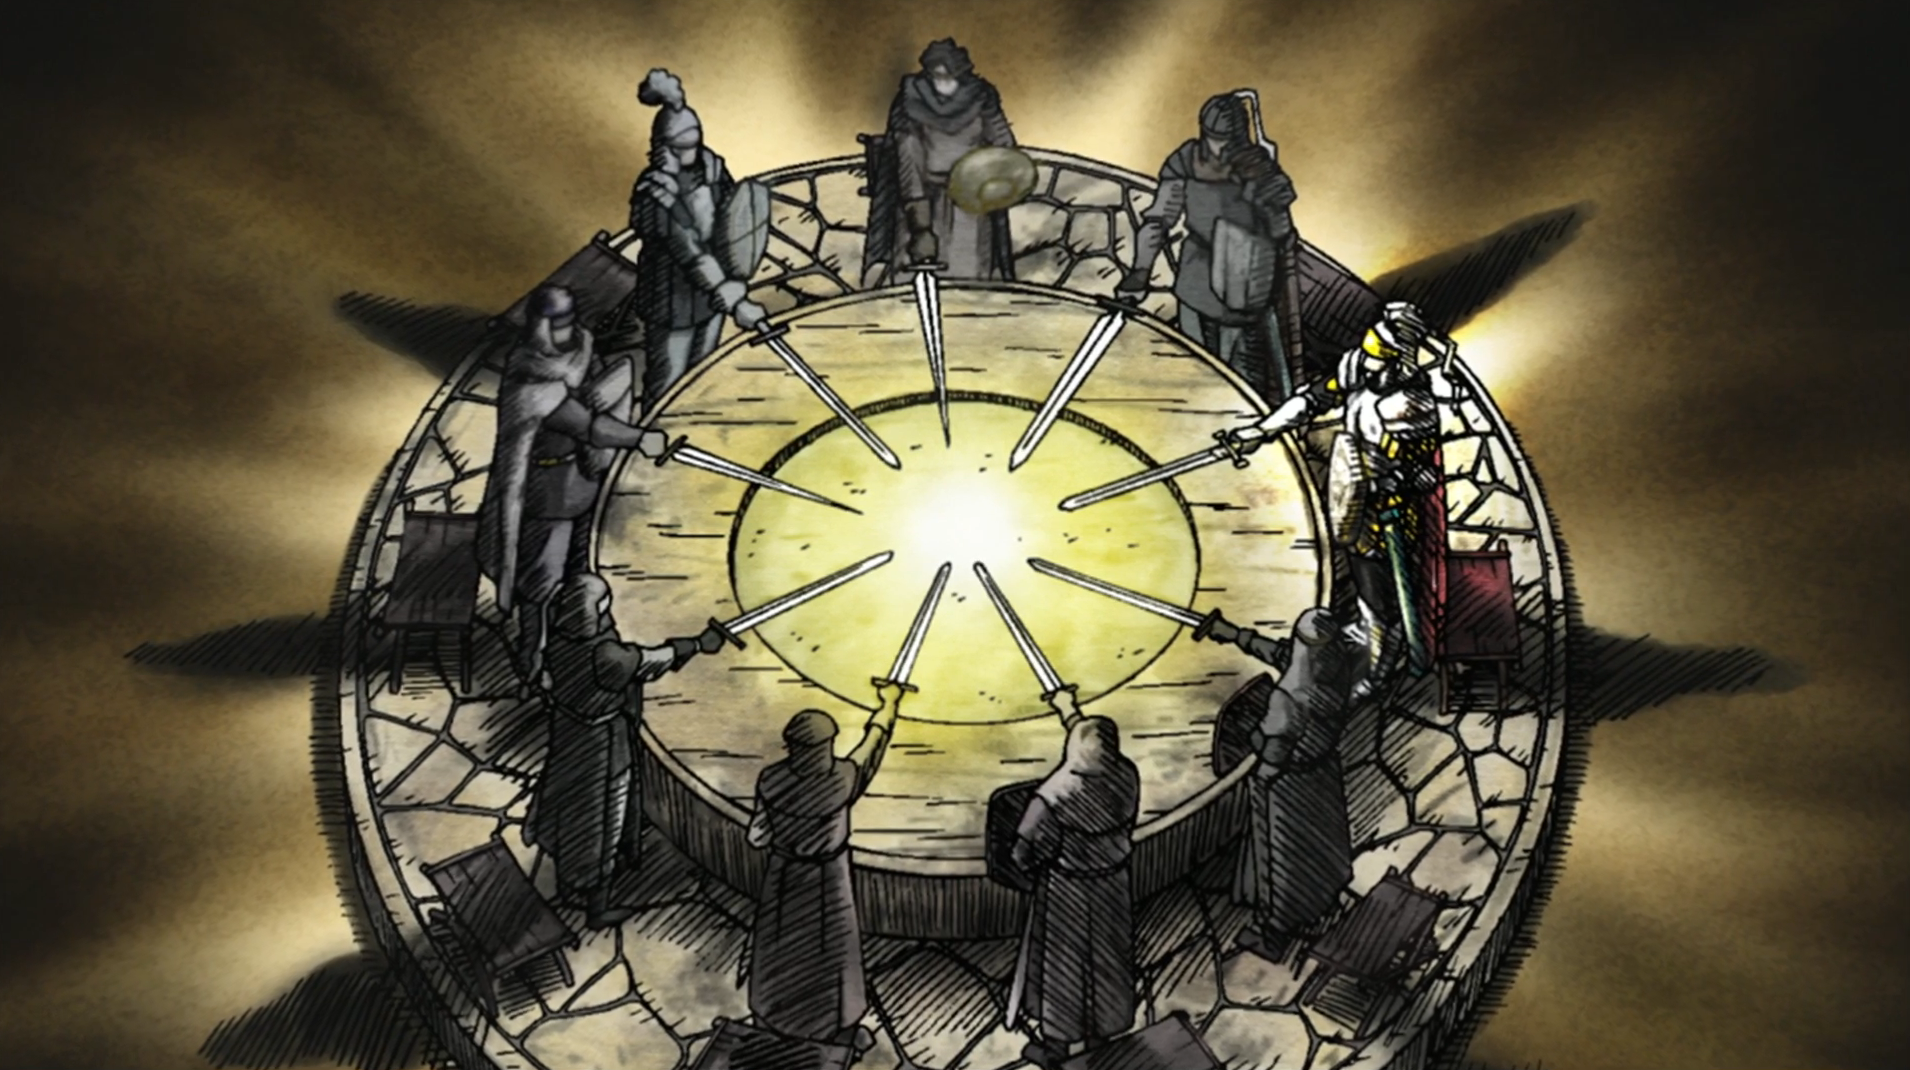 What happened to the knights of the round table